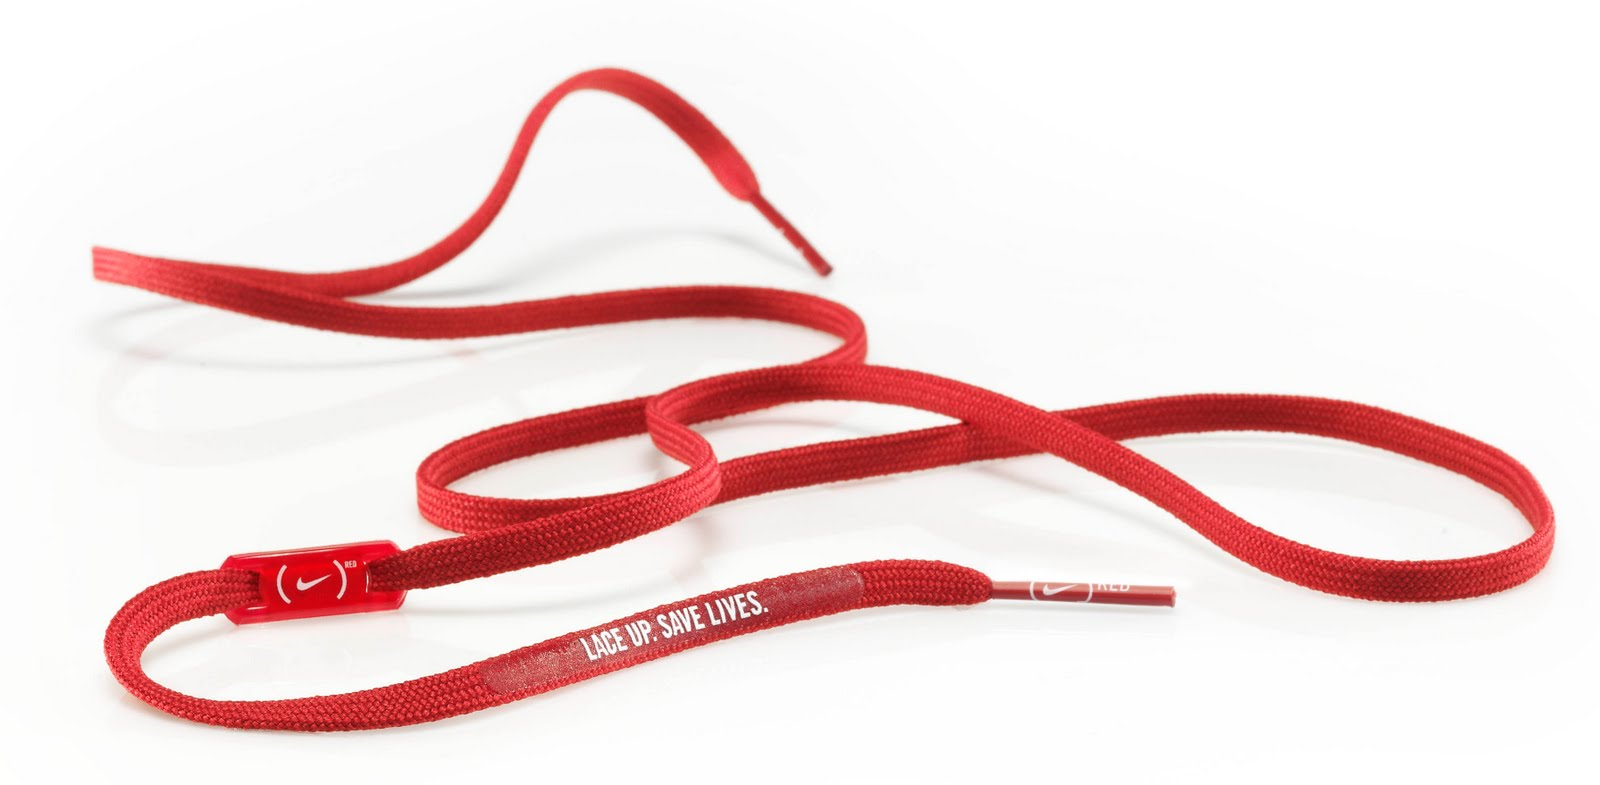 e46974f0131 Nike (Red) Laces Fighting AIDS - The Inspiration Room